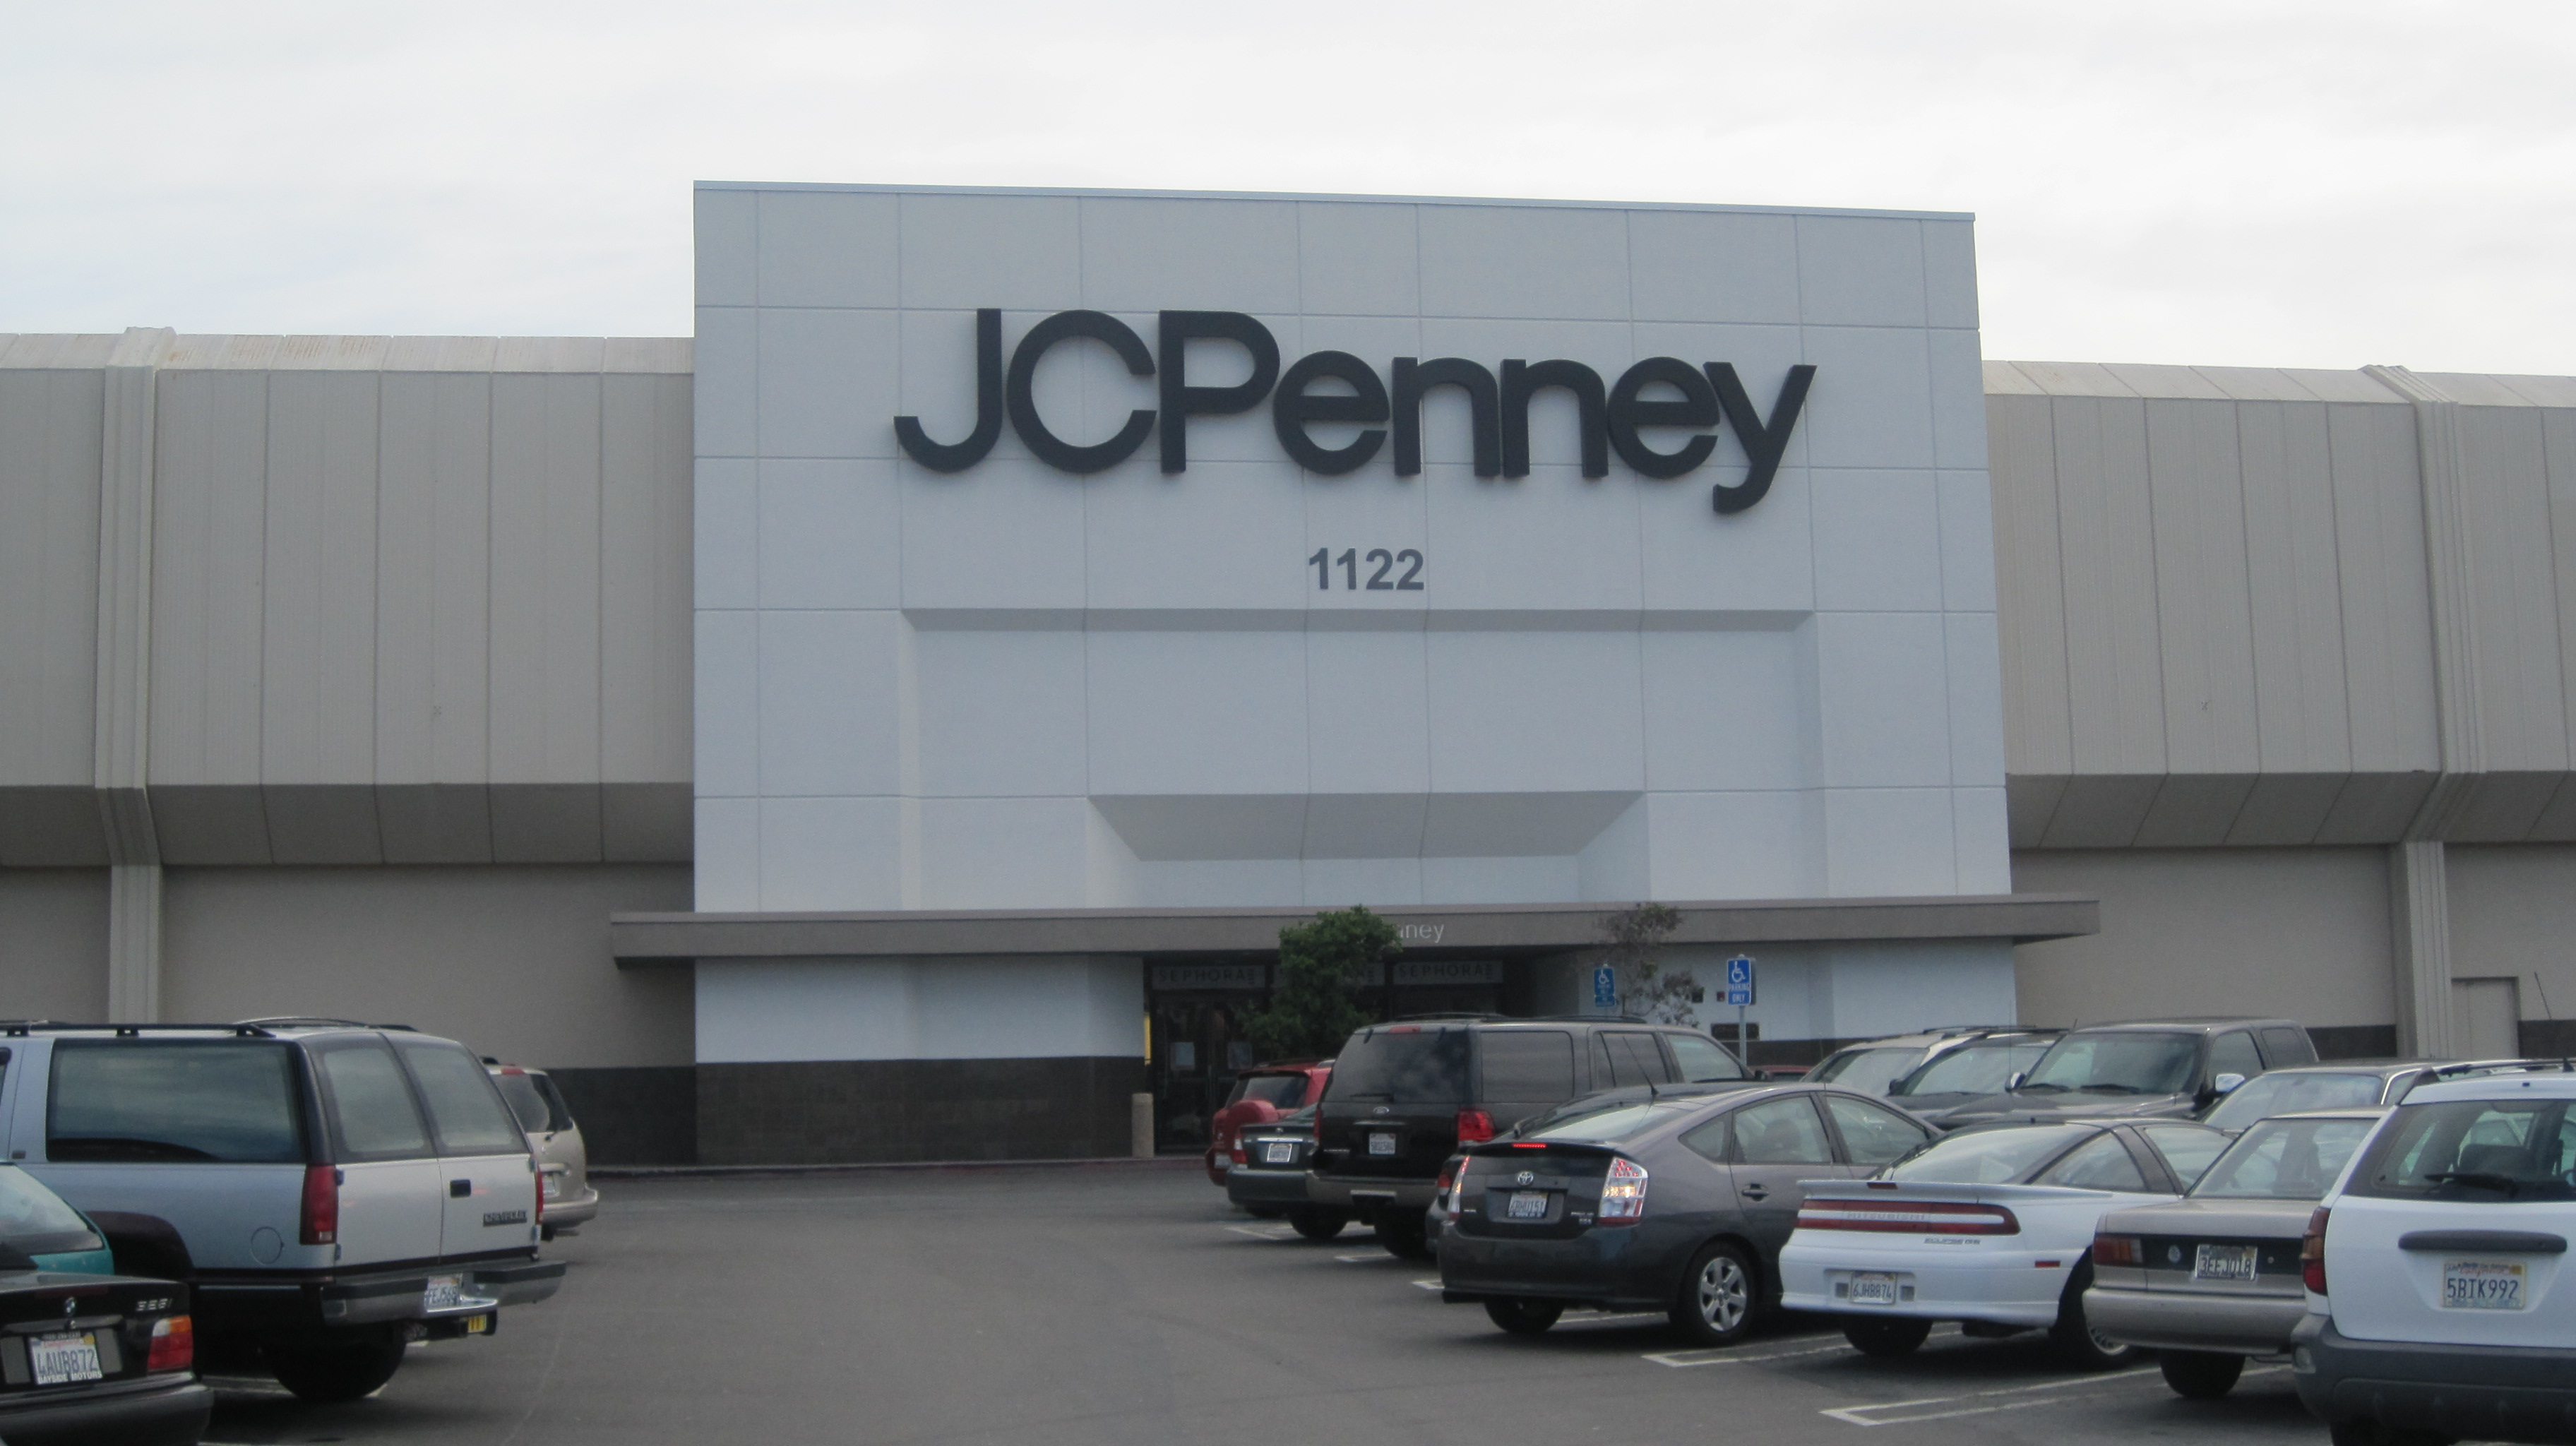 File jcpenney shops at tanforan exterior jpg wikimedia for Jc penneys